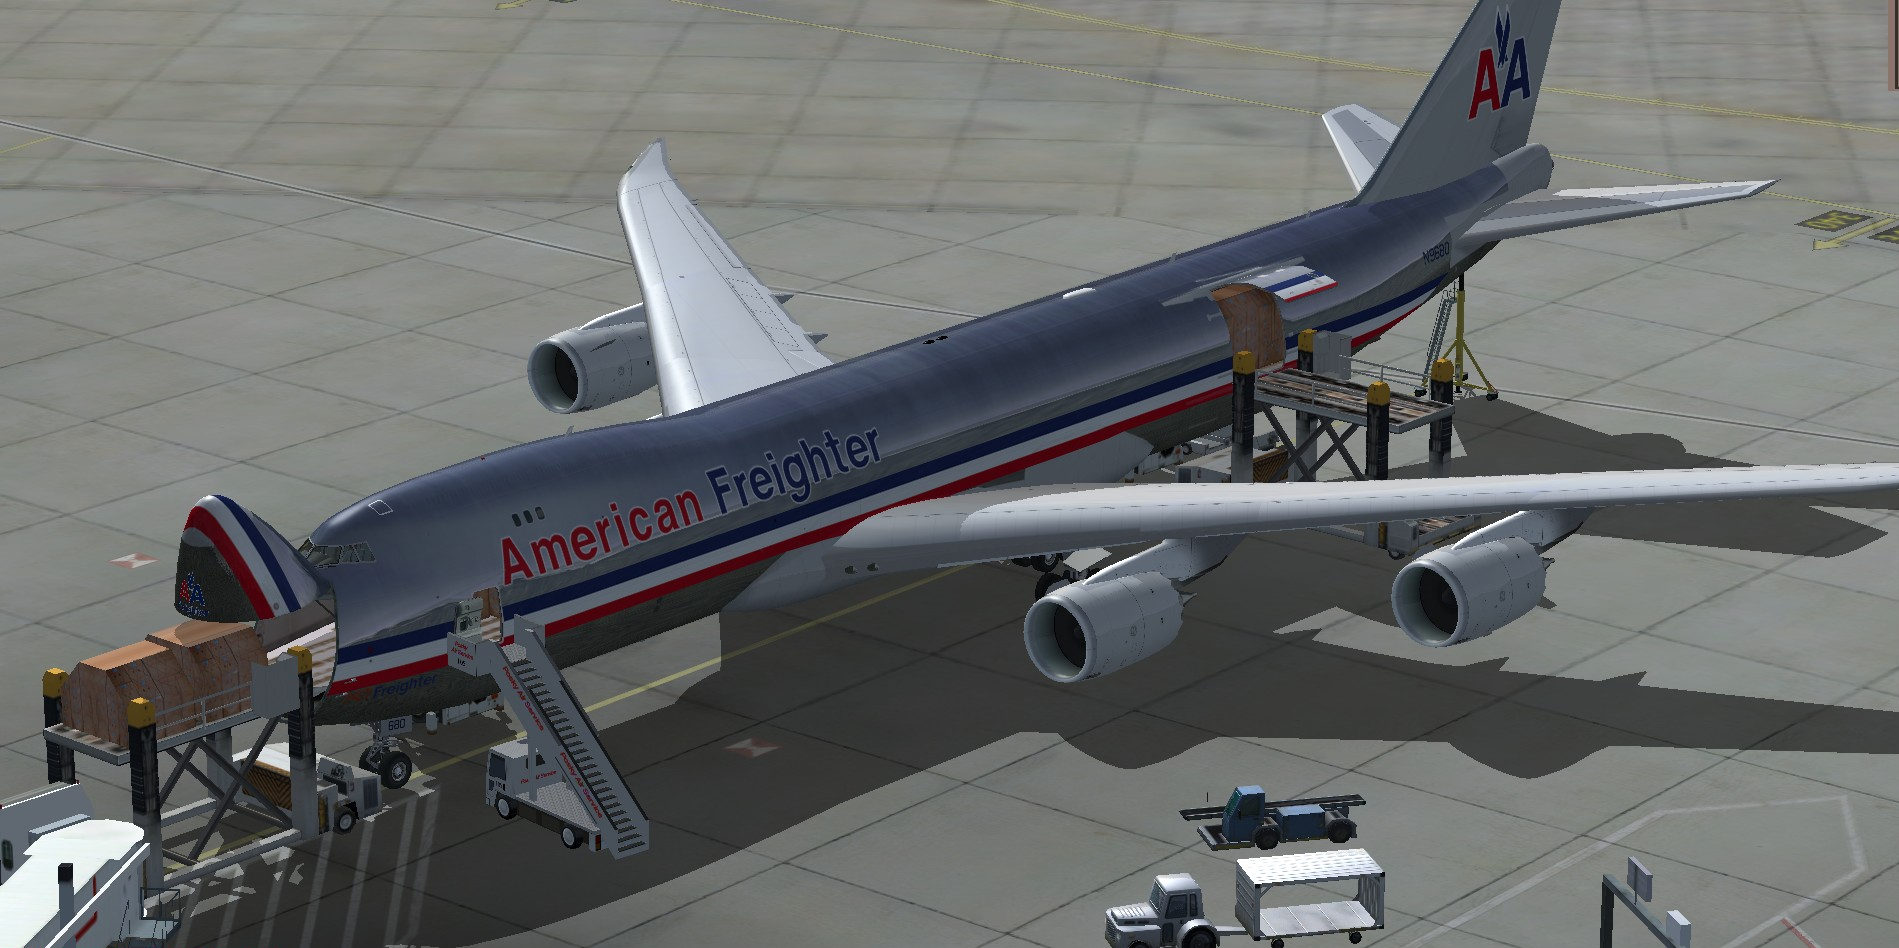 fs-freeware net - Cargo Aircraft